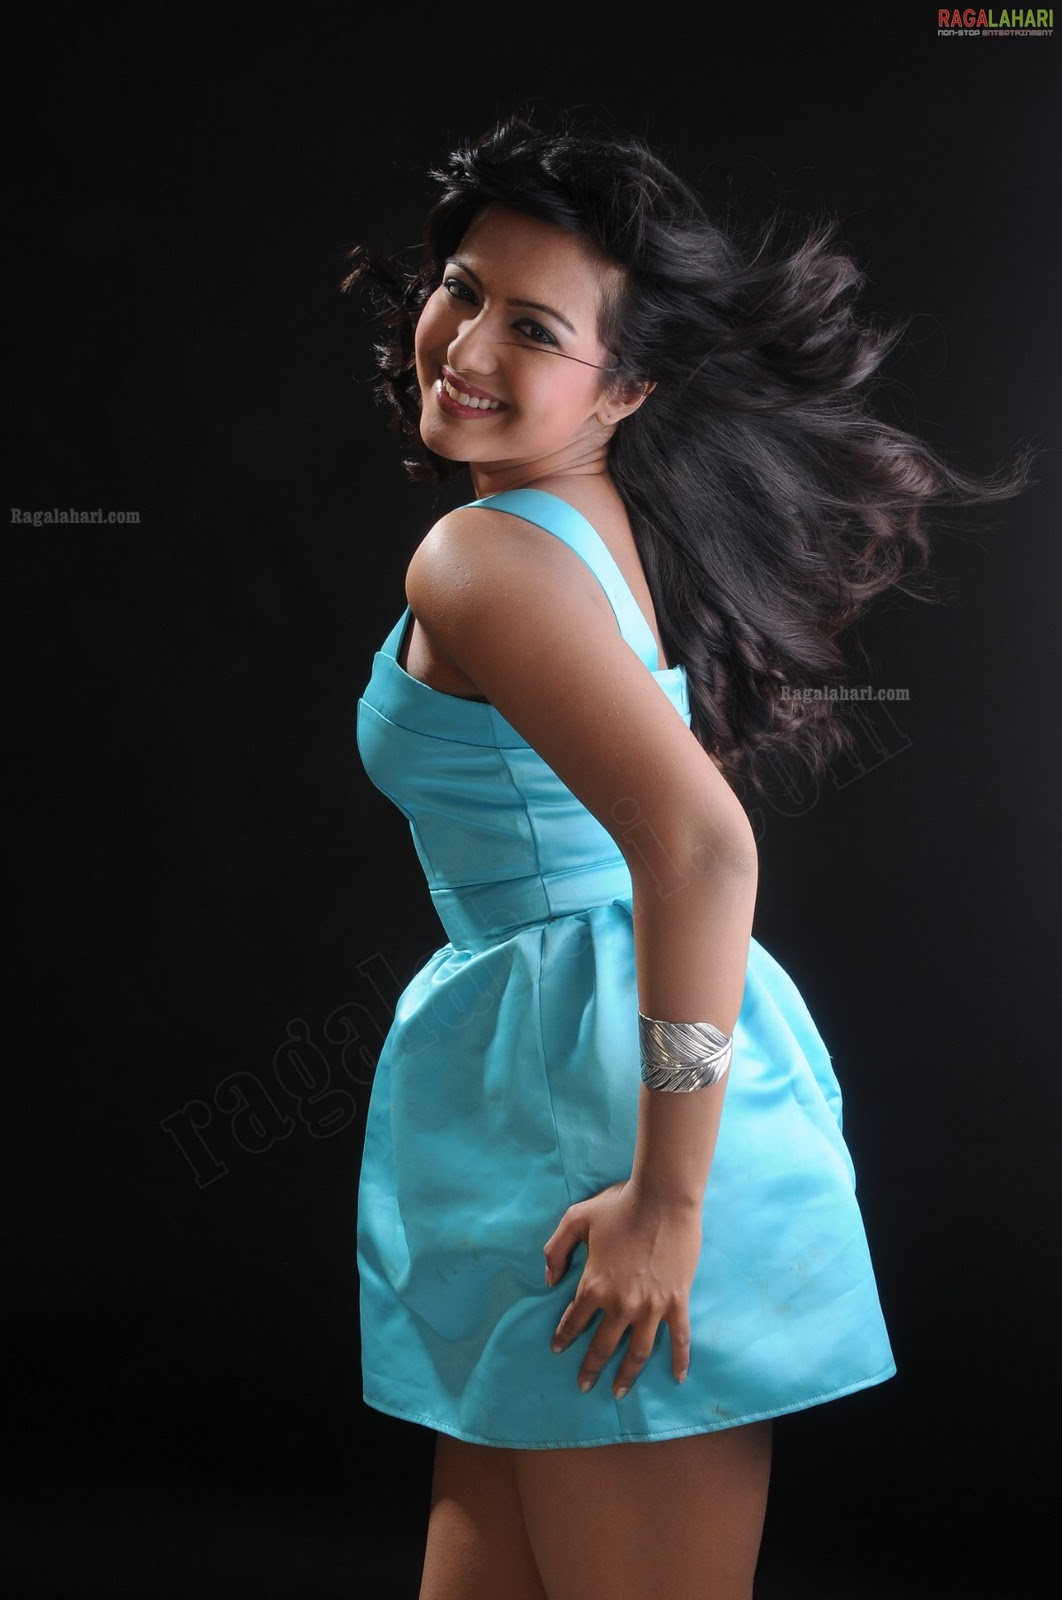 Catherine Tresa, hot images, Hollywood, Bollywood Actors